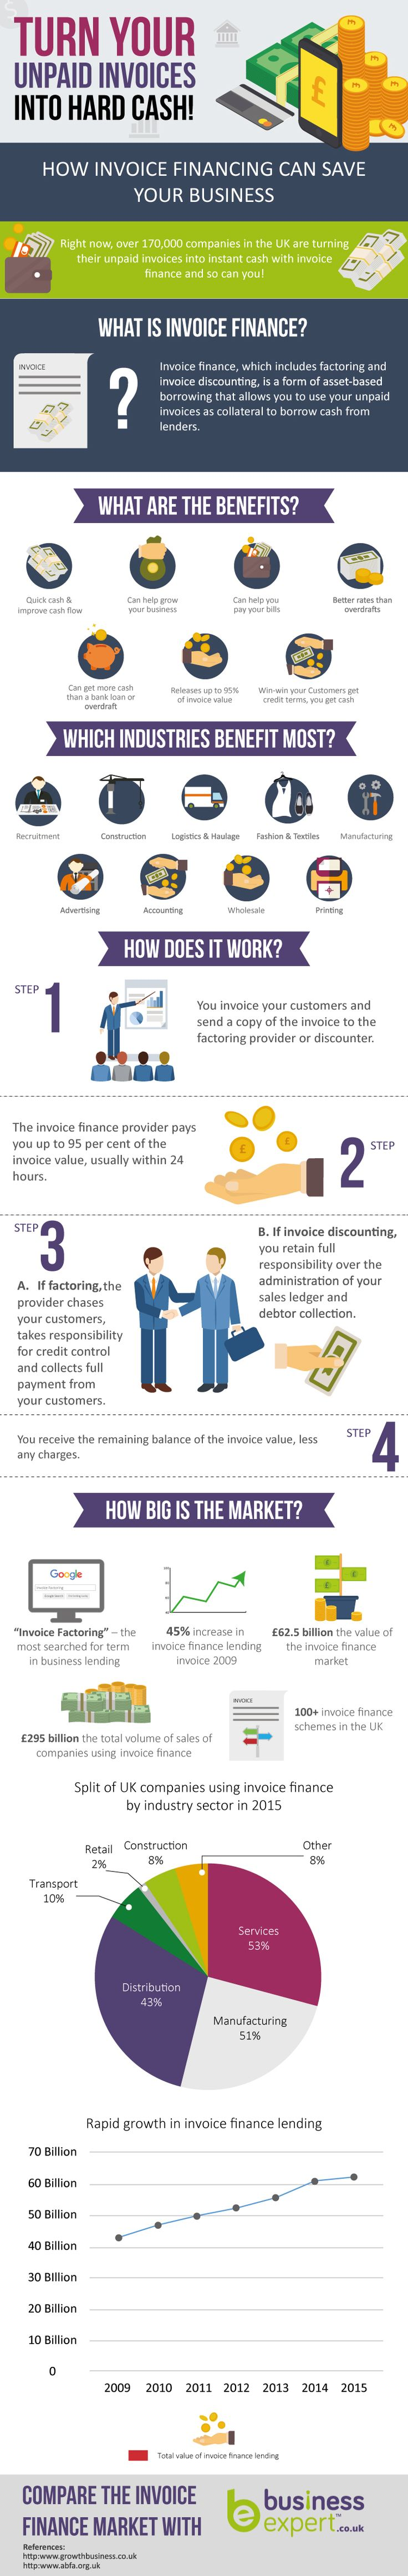 Invoice finance is a growing phenomenon in the UK but not many people actually know what it is. A market worth £62.5bn, it might be worth finding out more. Business Expert's infographic has everything from its background to who is suitable for it and how it works.